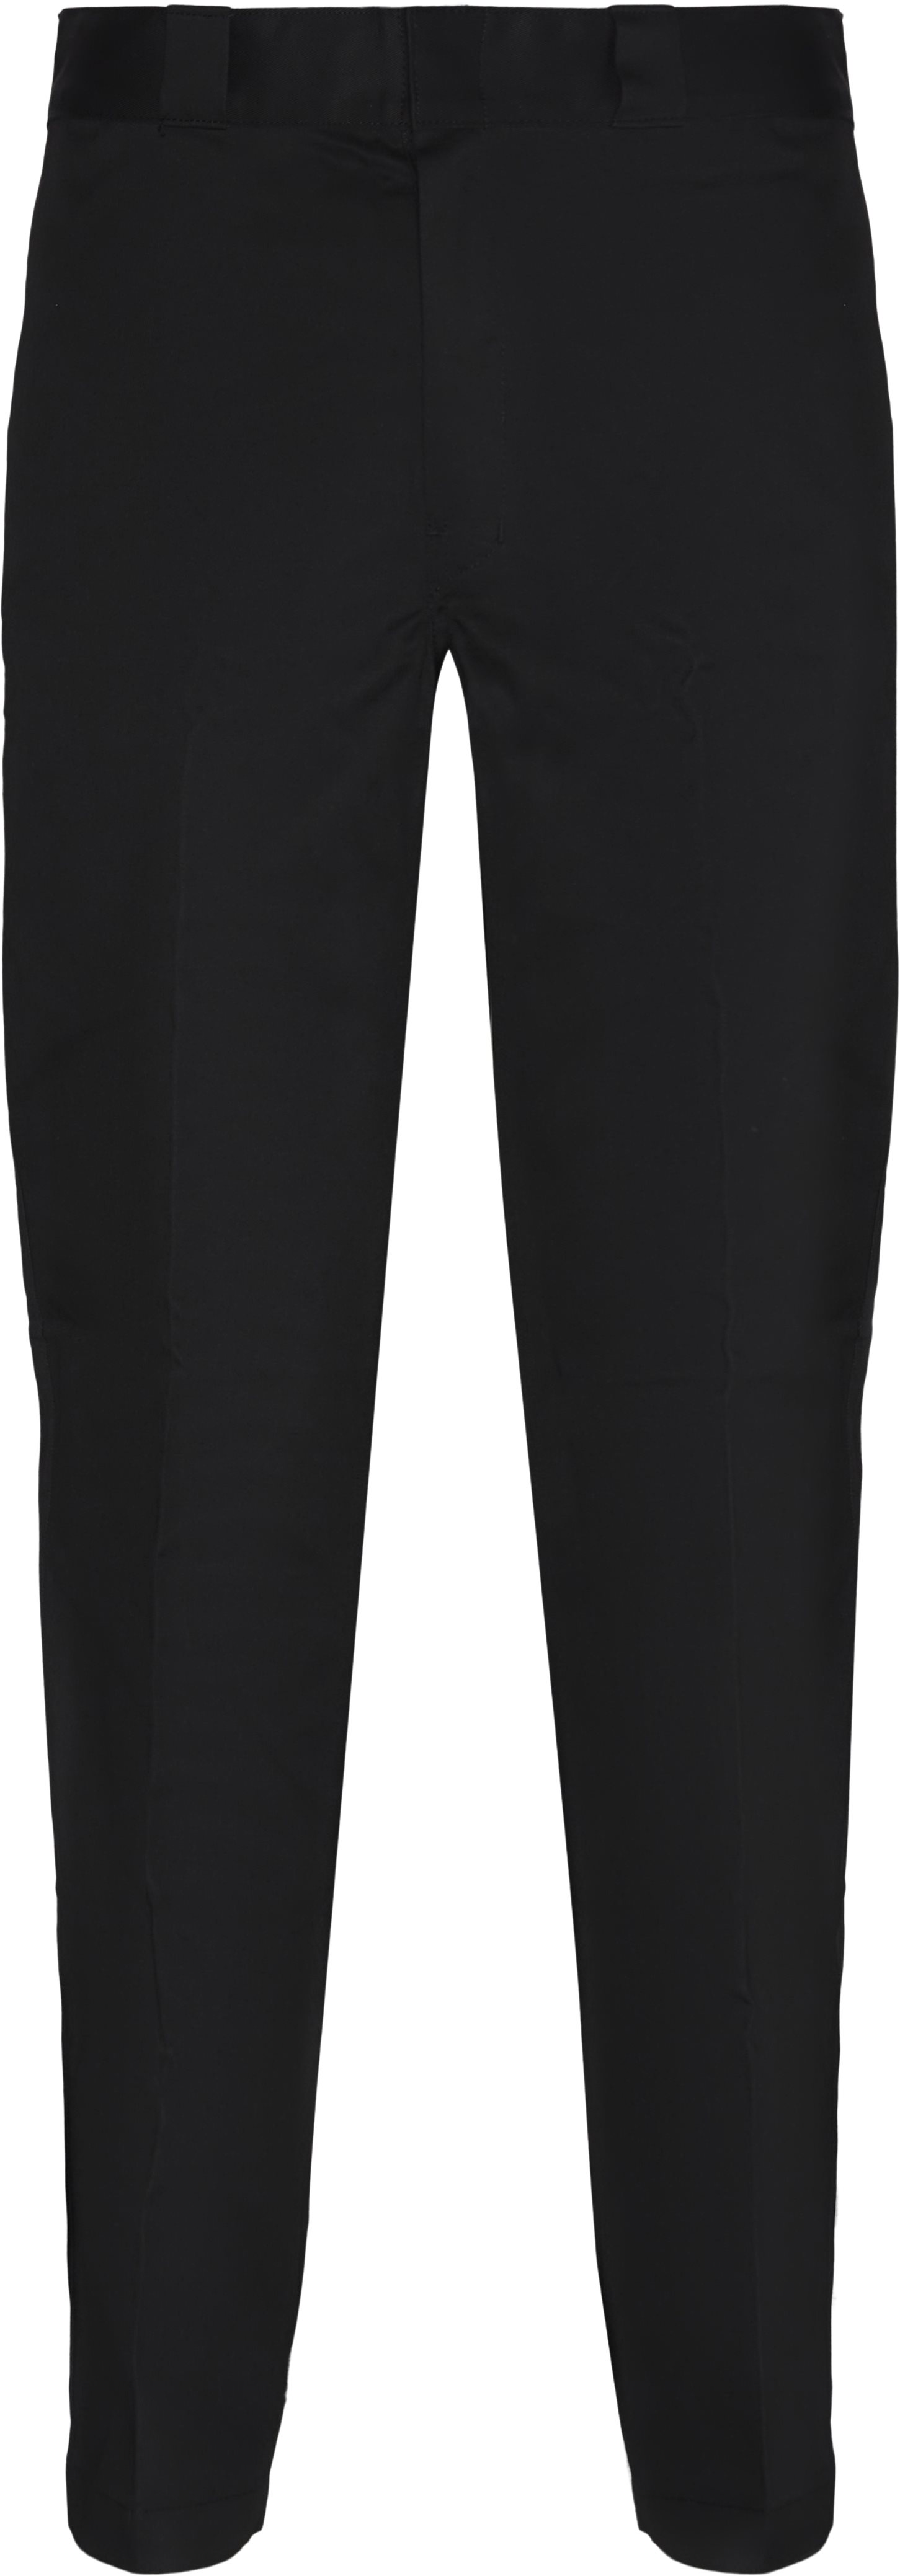 Trousers - Relaxed fit - Black